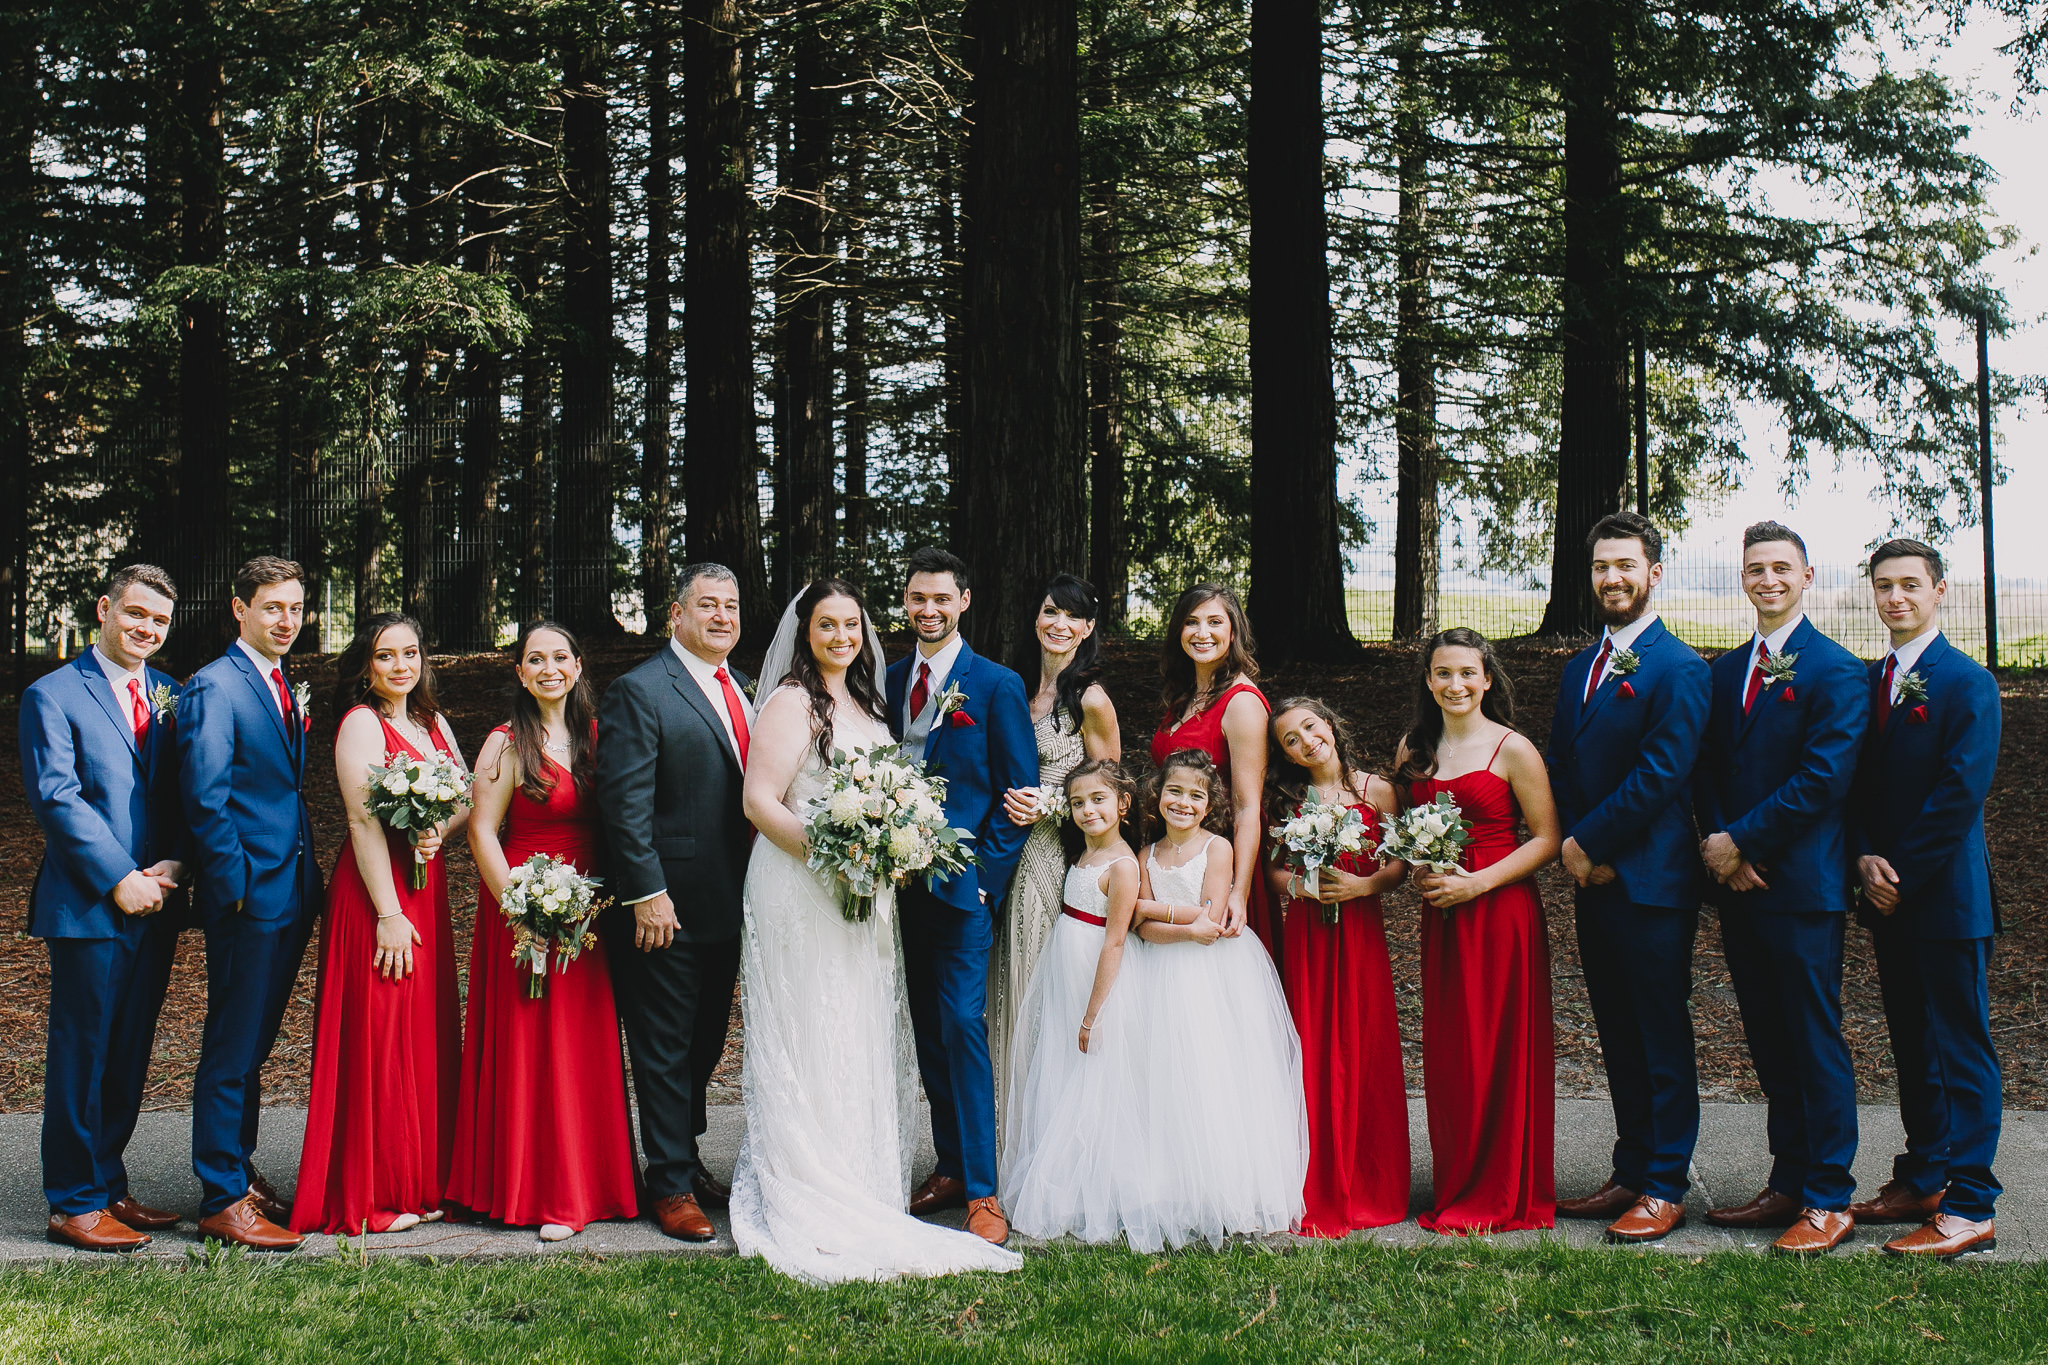 Archer Inspired Photography Shelby and Ben Wedding Sally Tomatoes NorCal Rohnert Park California-30.jpg